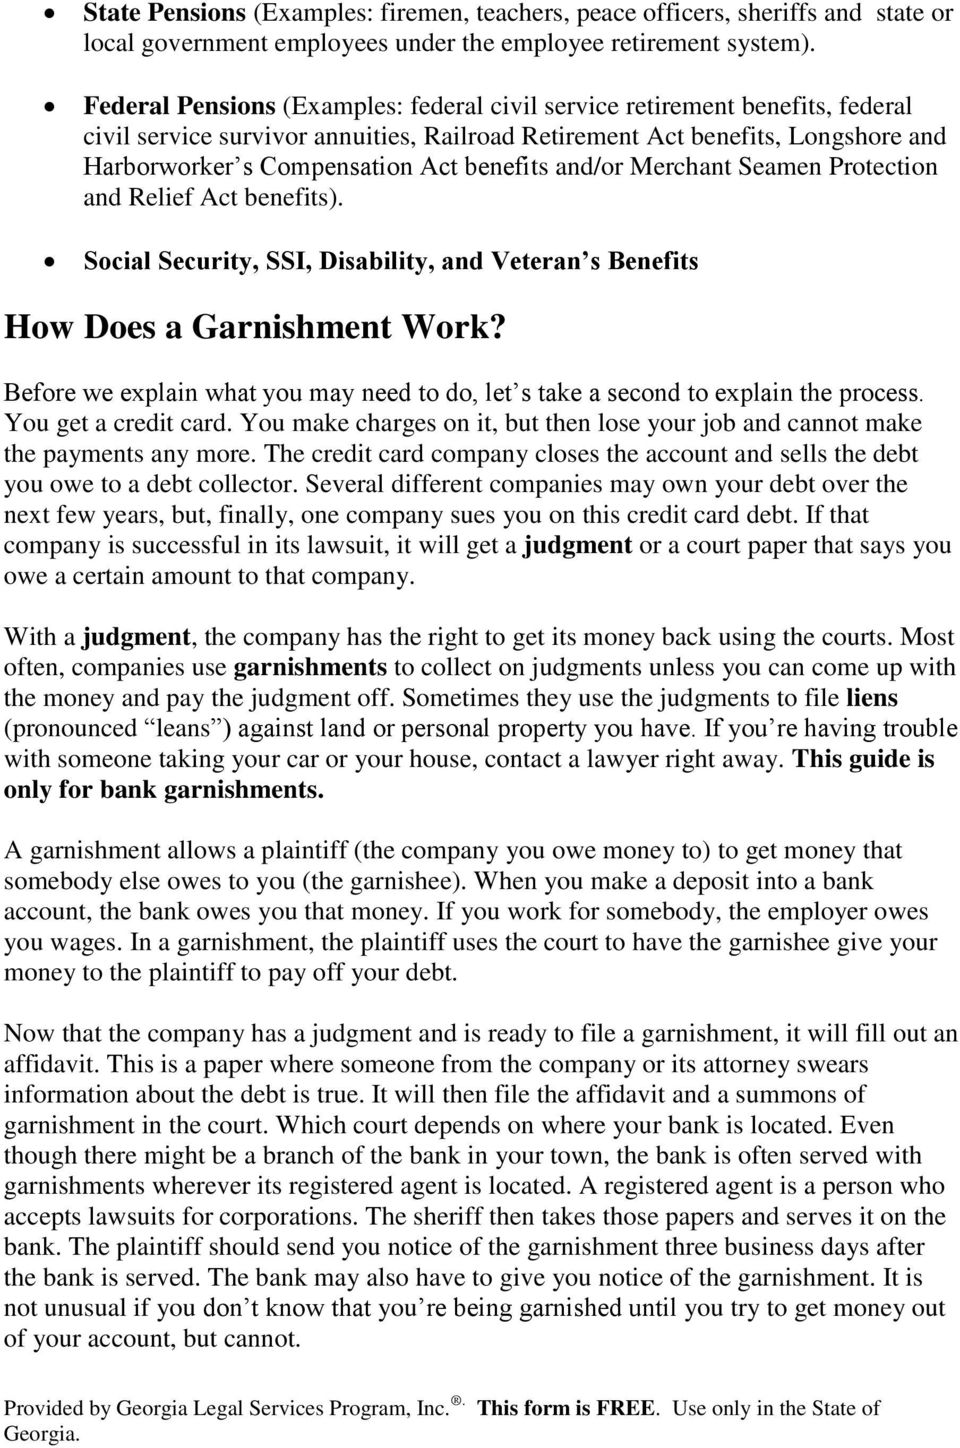 benefits and/or Merchant Seamen Protection and Relief Act benefits). Social Security, SSI, Disability, and Veteran s Benefits How Does a Garnishment Work?